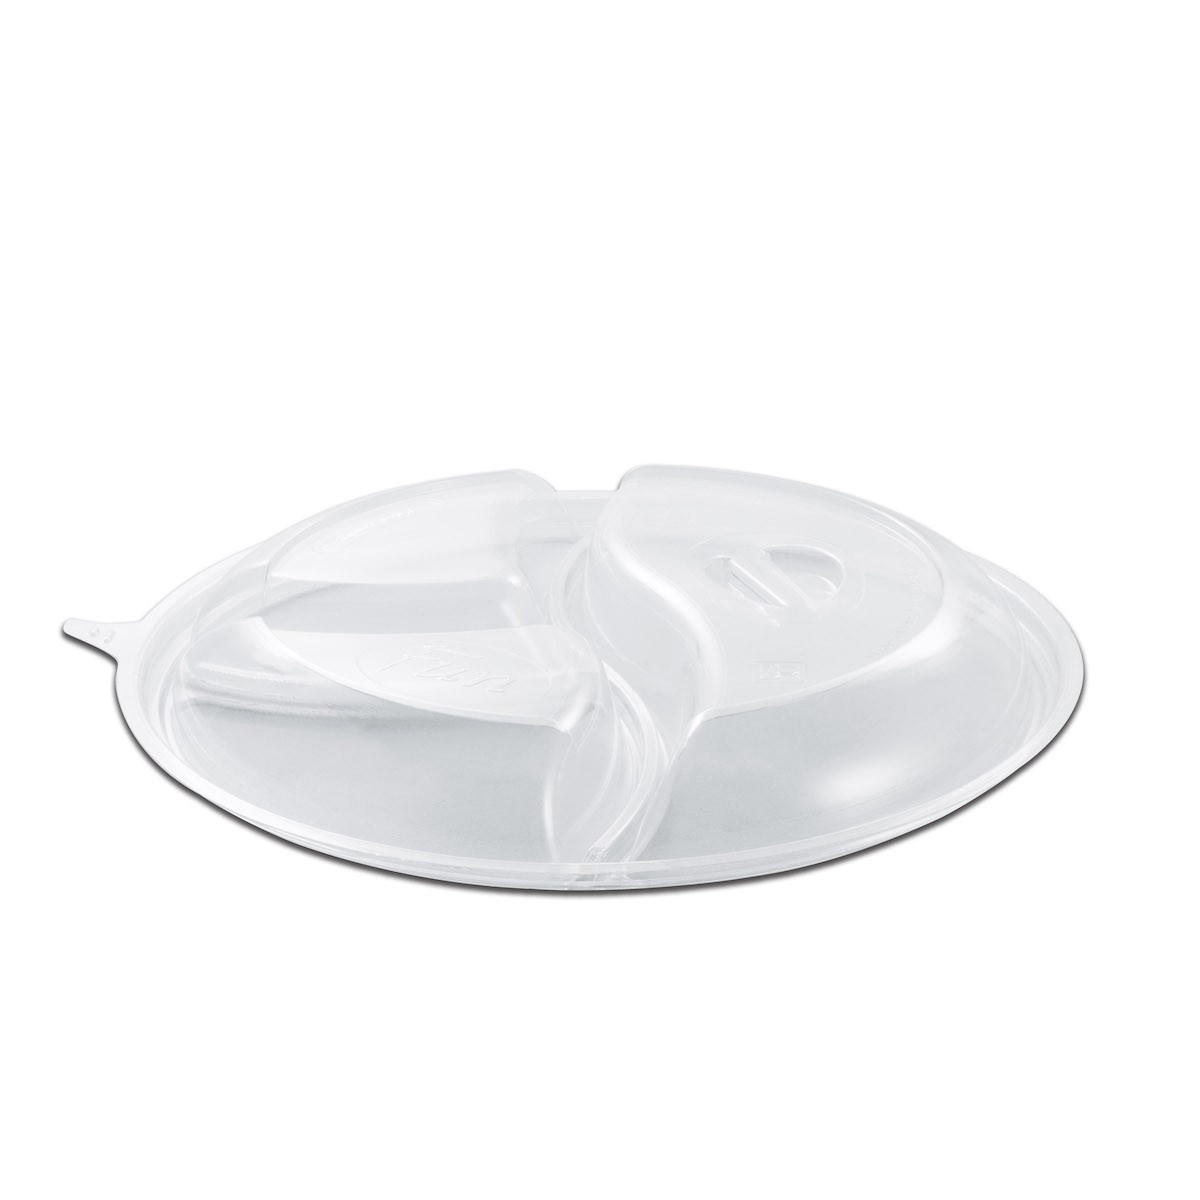 Roundpac Dome Lid 3-Comp. w/ Spork Slot for Round Plate/Cont. ⌀26cm - PP/Clear Deluxe   25pcsx10pkts